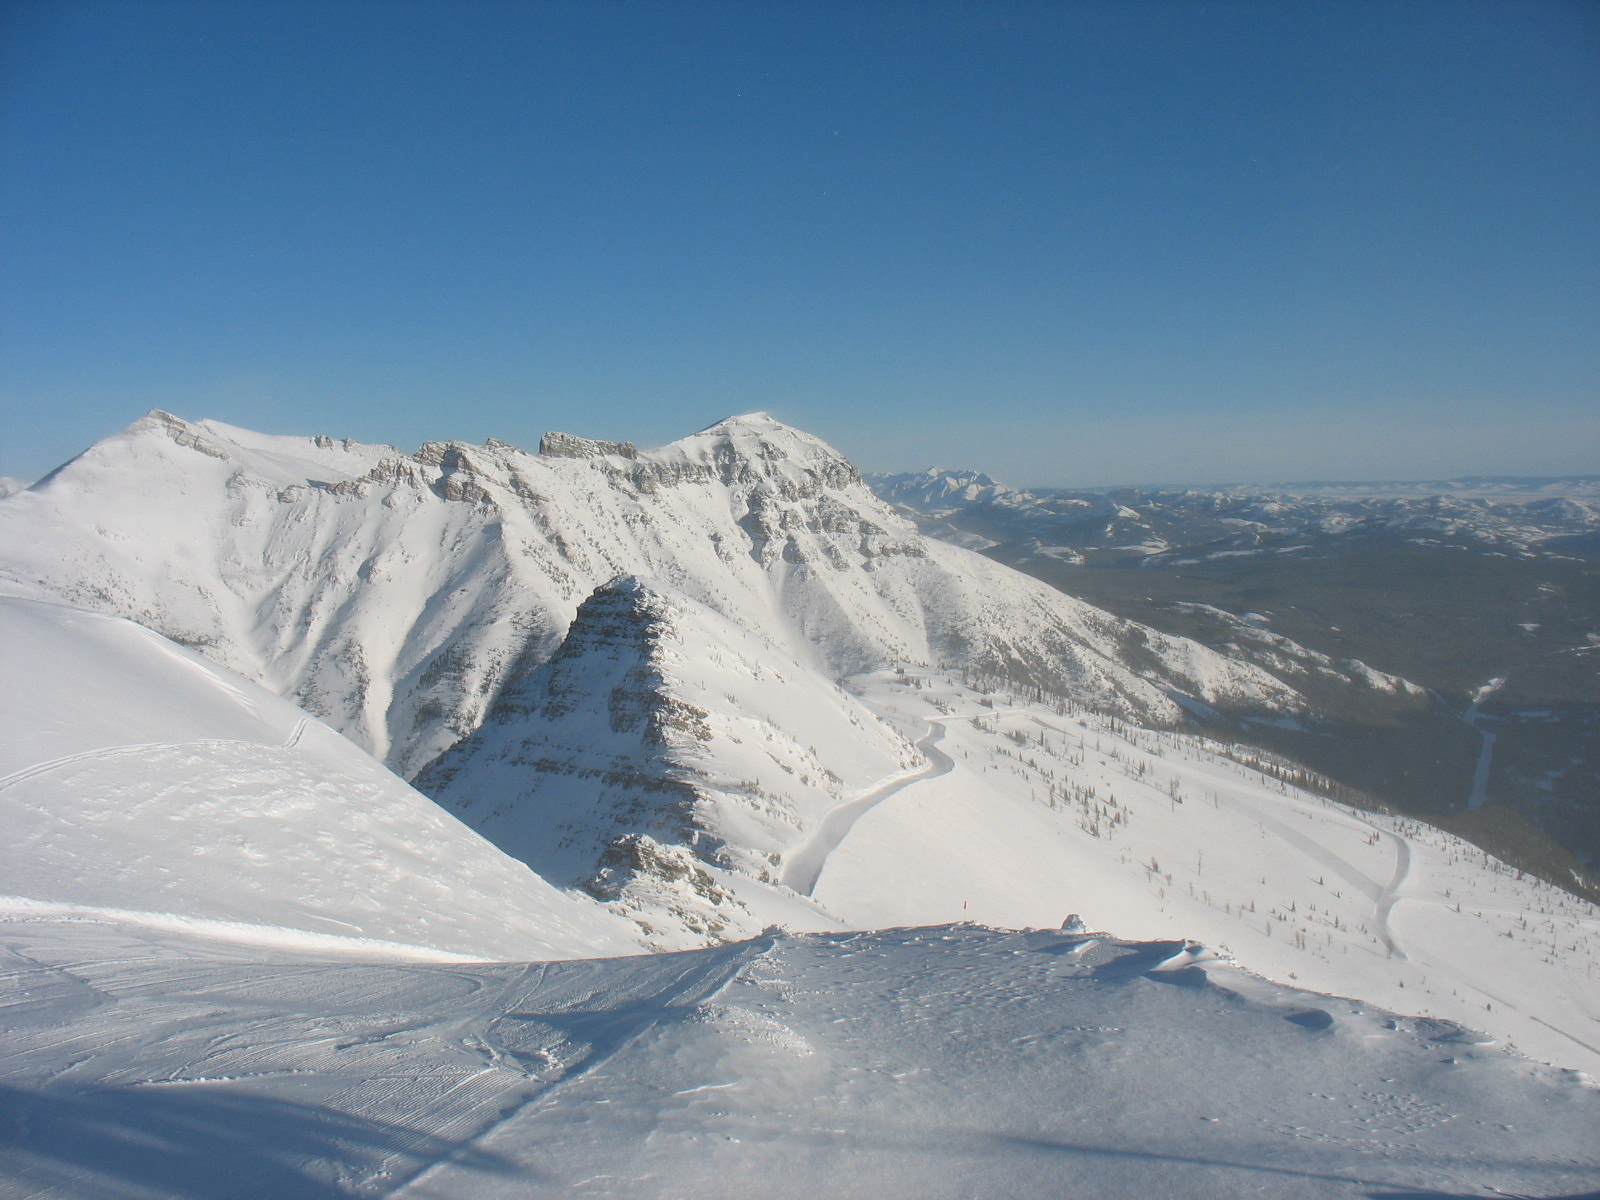 View from the Top of the Castle Mountain Ski Hill. Photo Credit:Jollin Charest